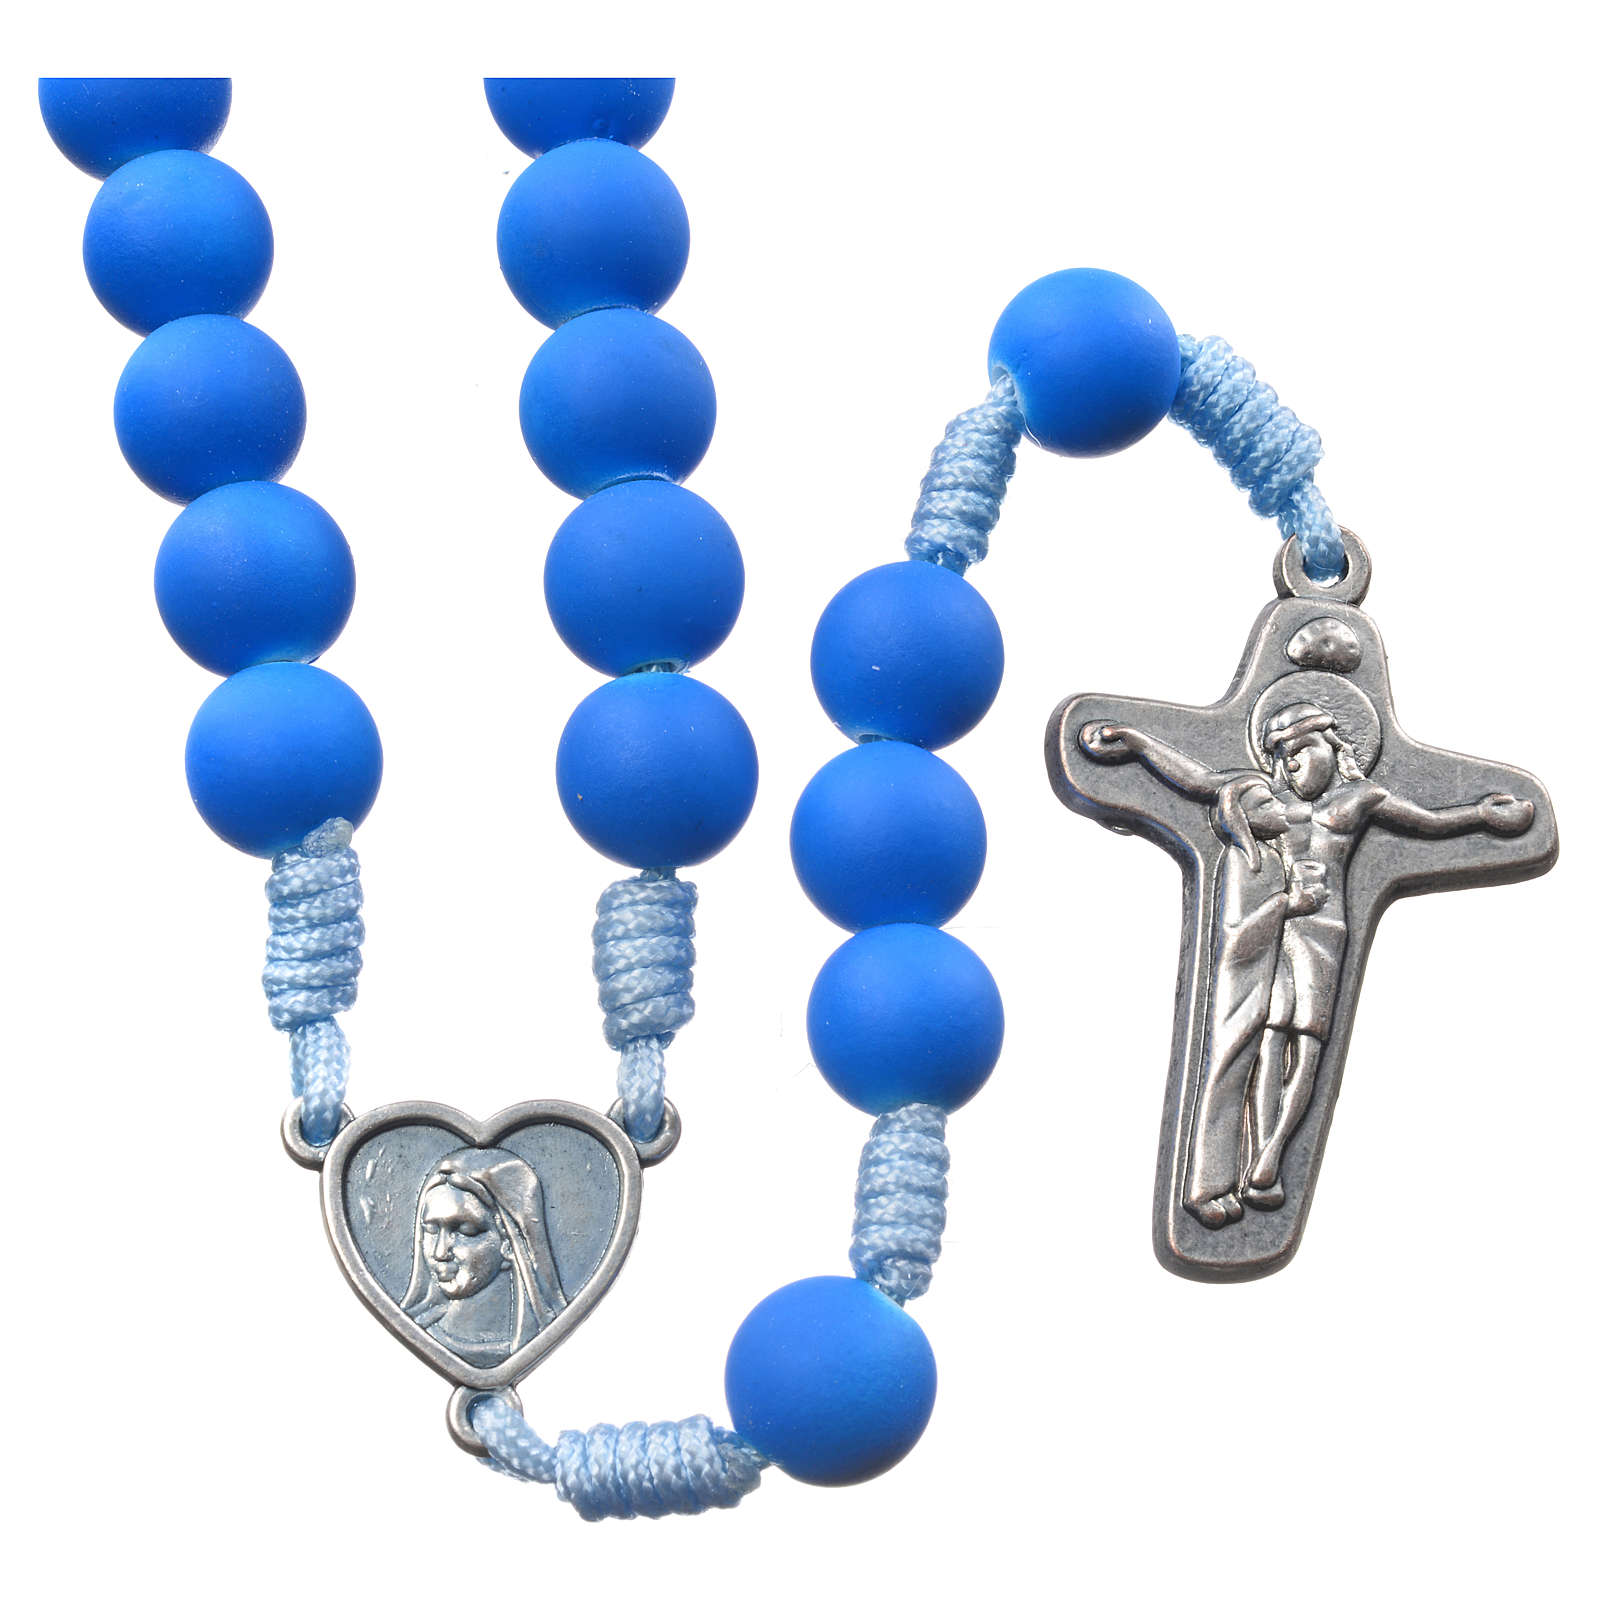 Medjugorje rosary in blue fimo with Medjugorje soil 4